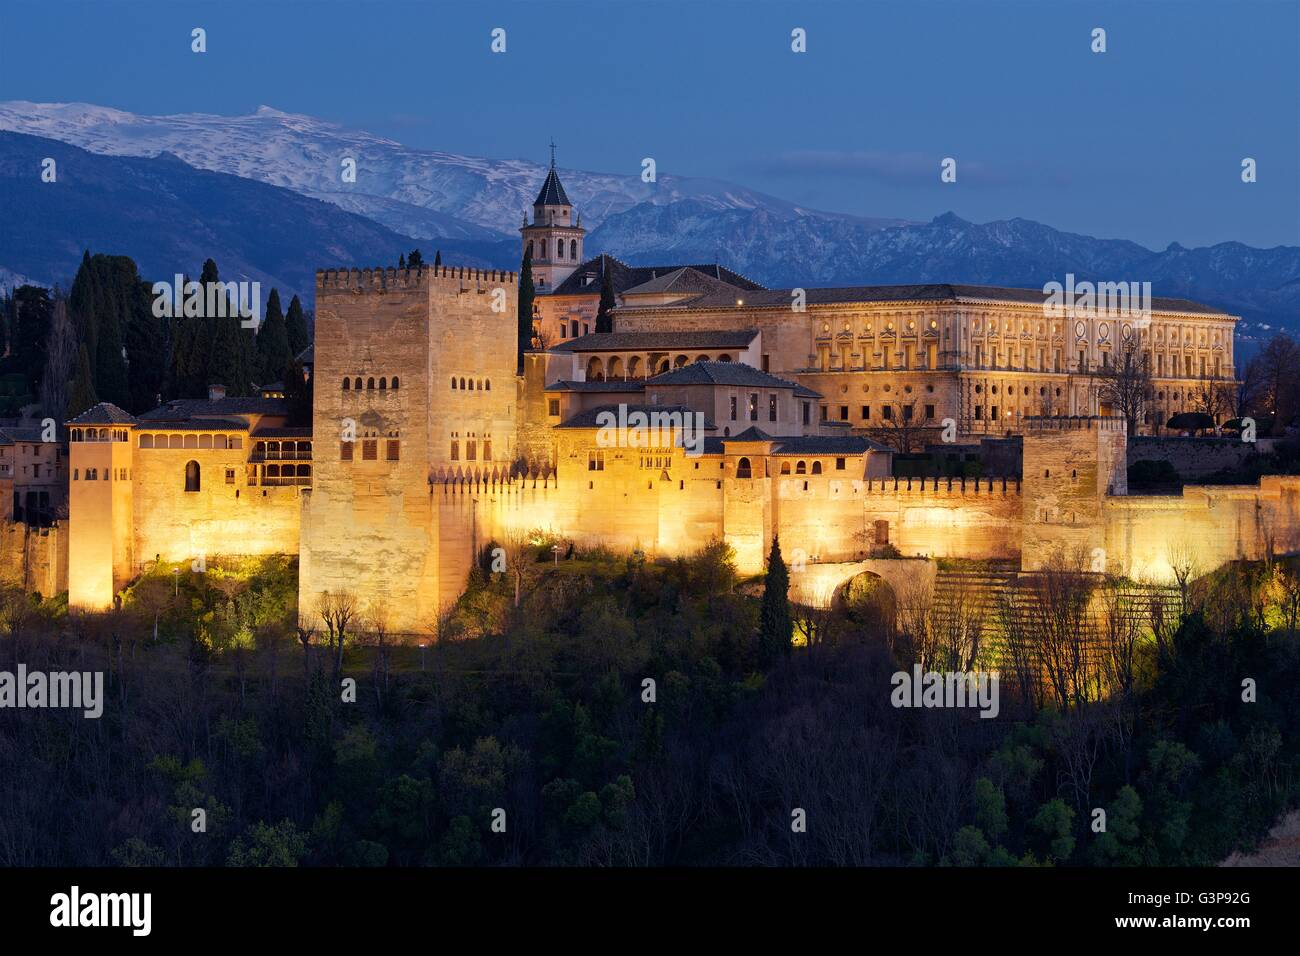 Une image réalisée à partir de nuit Mirador San Nicolas de l'Alhambra Palace lit up at night Photo Stock